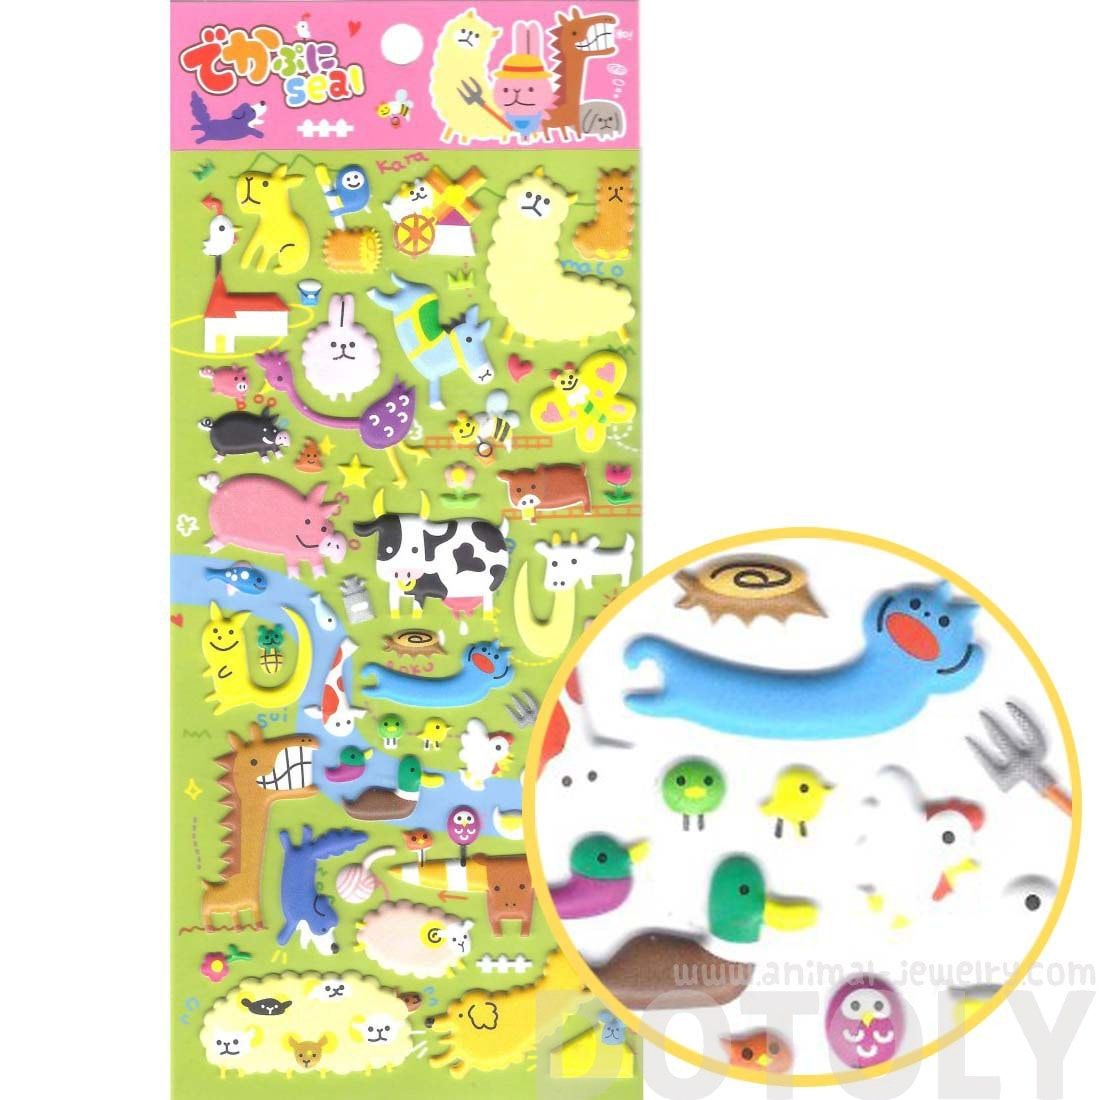 Mixed Cartoon Animal Alpaca Horse Dog Sheep Farm Themed Puffy Stickers